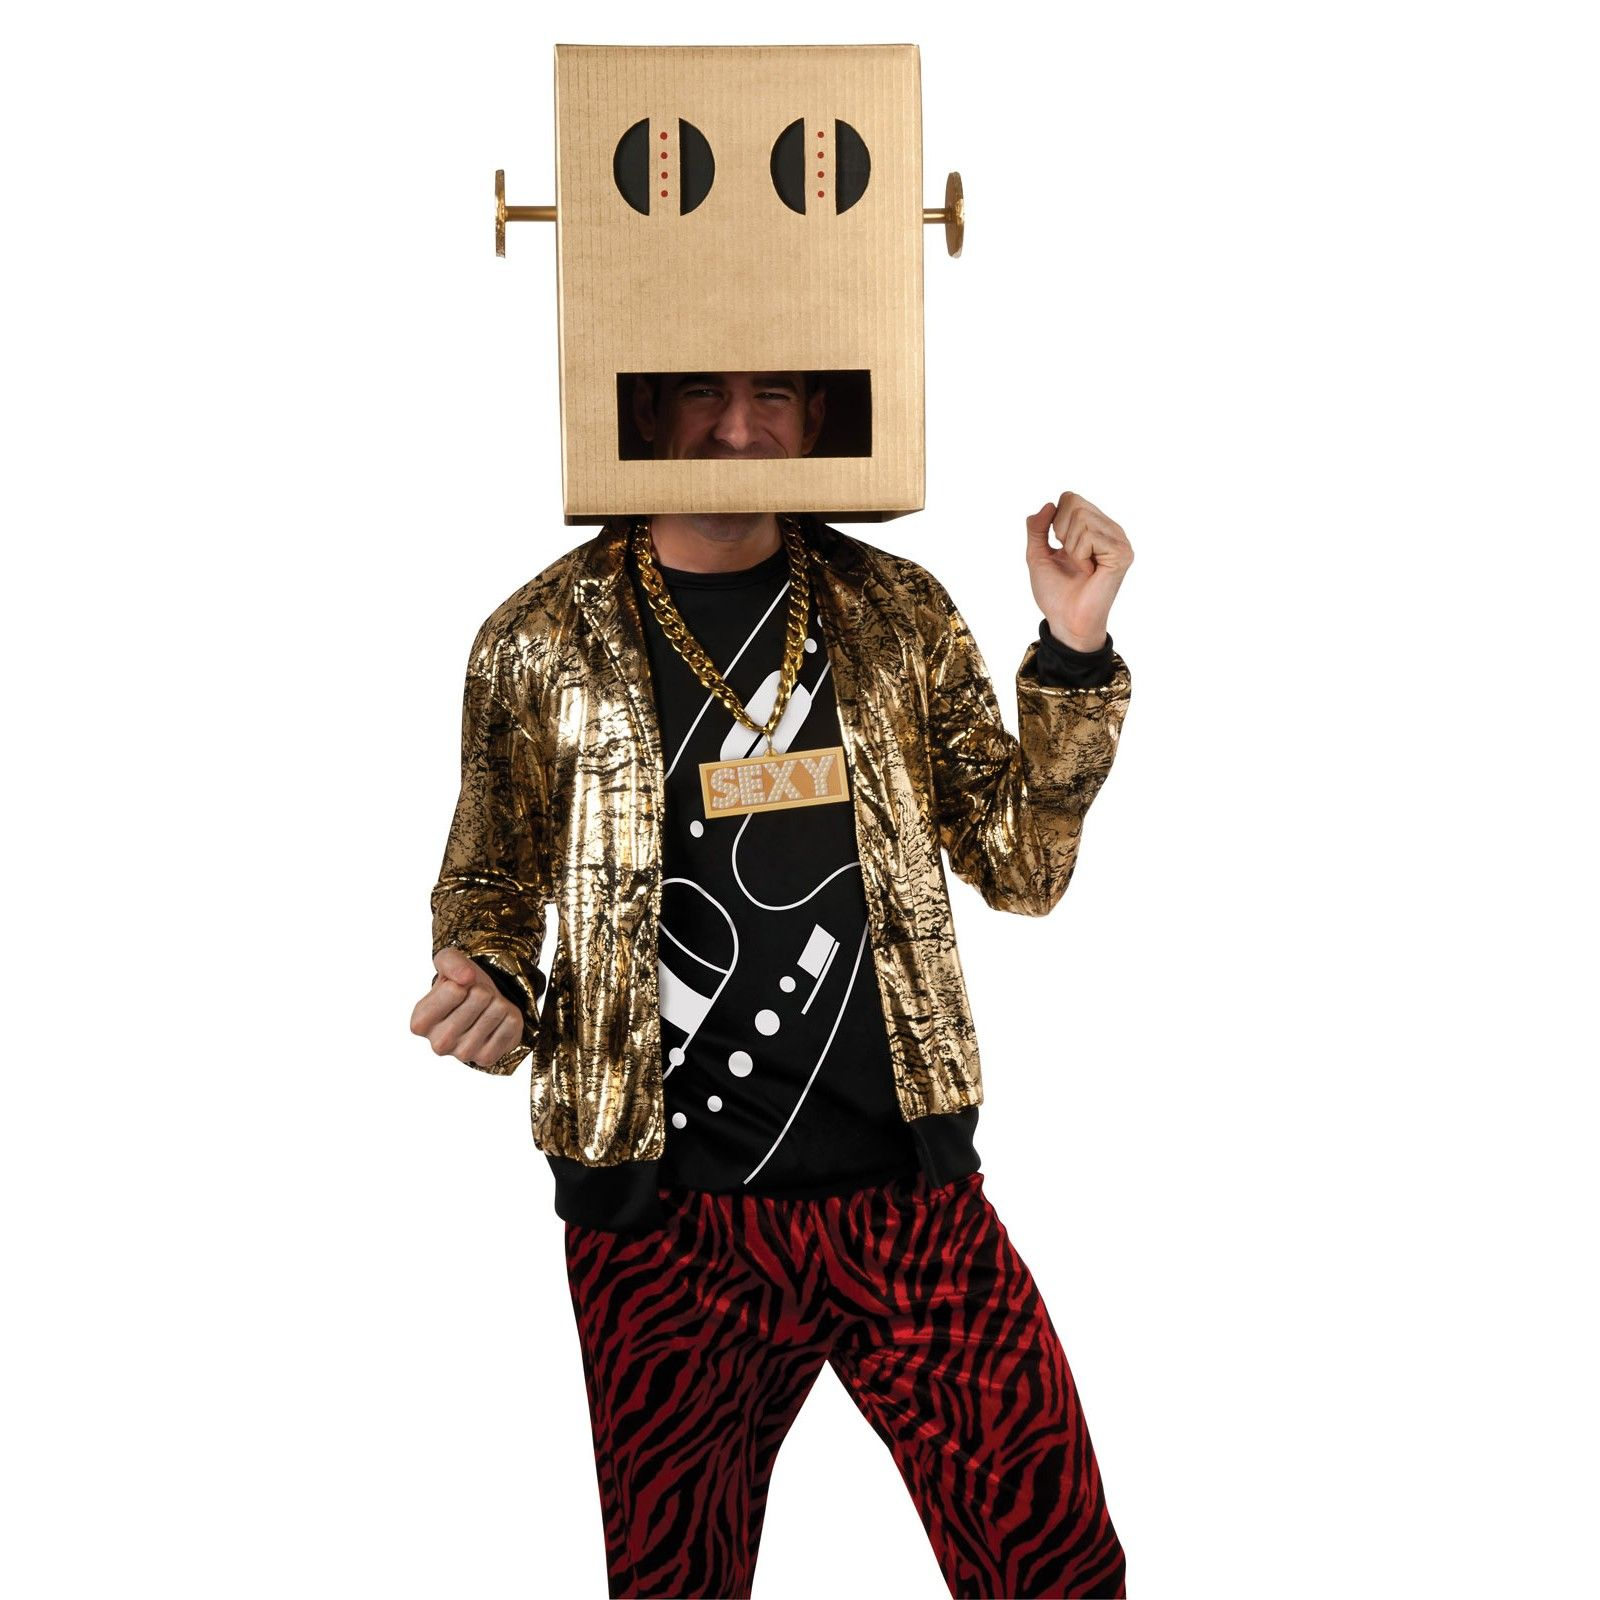 LMFAO Shuffle Bot Party Rock Anthem Adult Costume 803798 ...